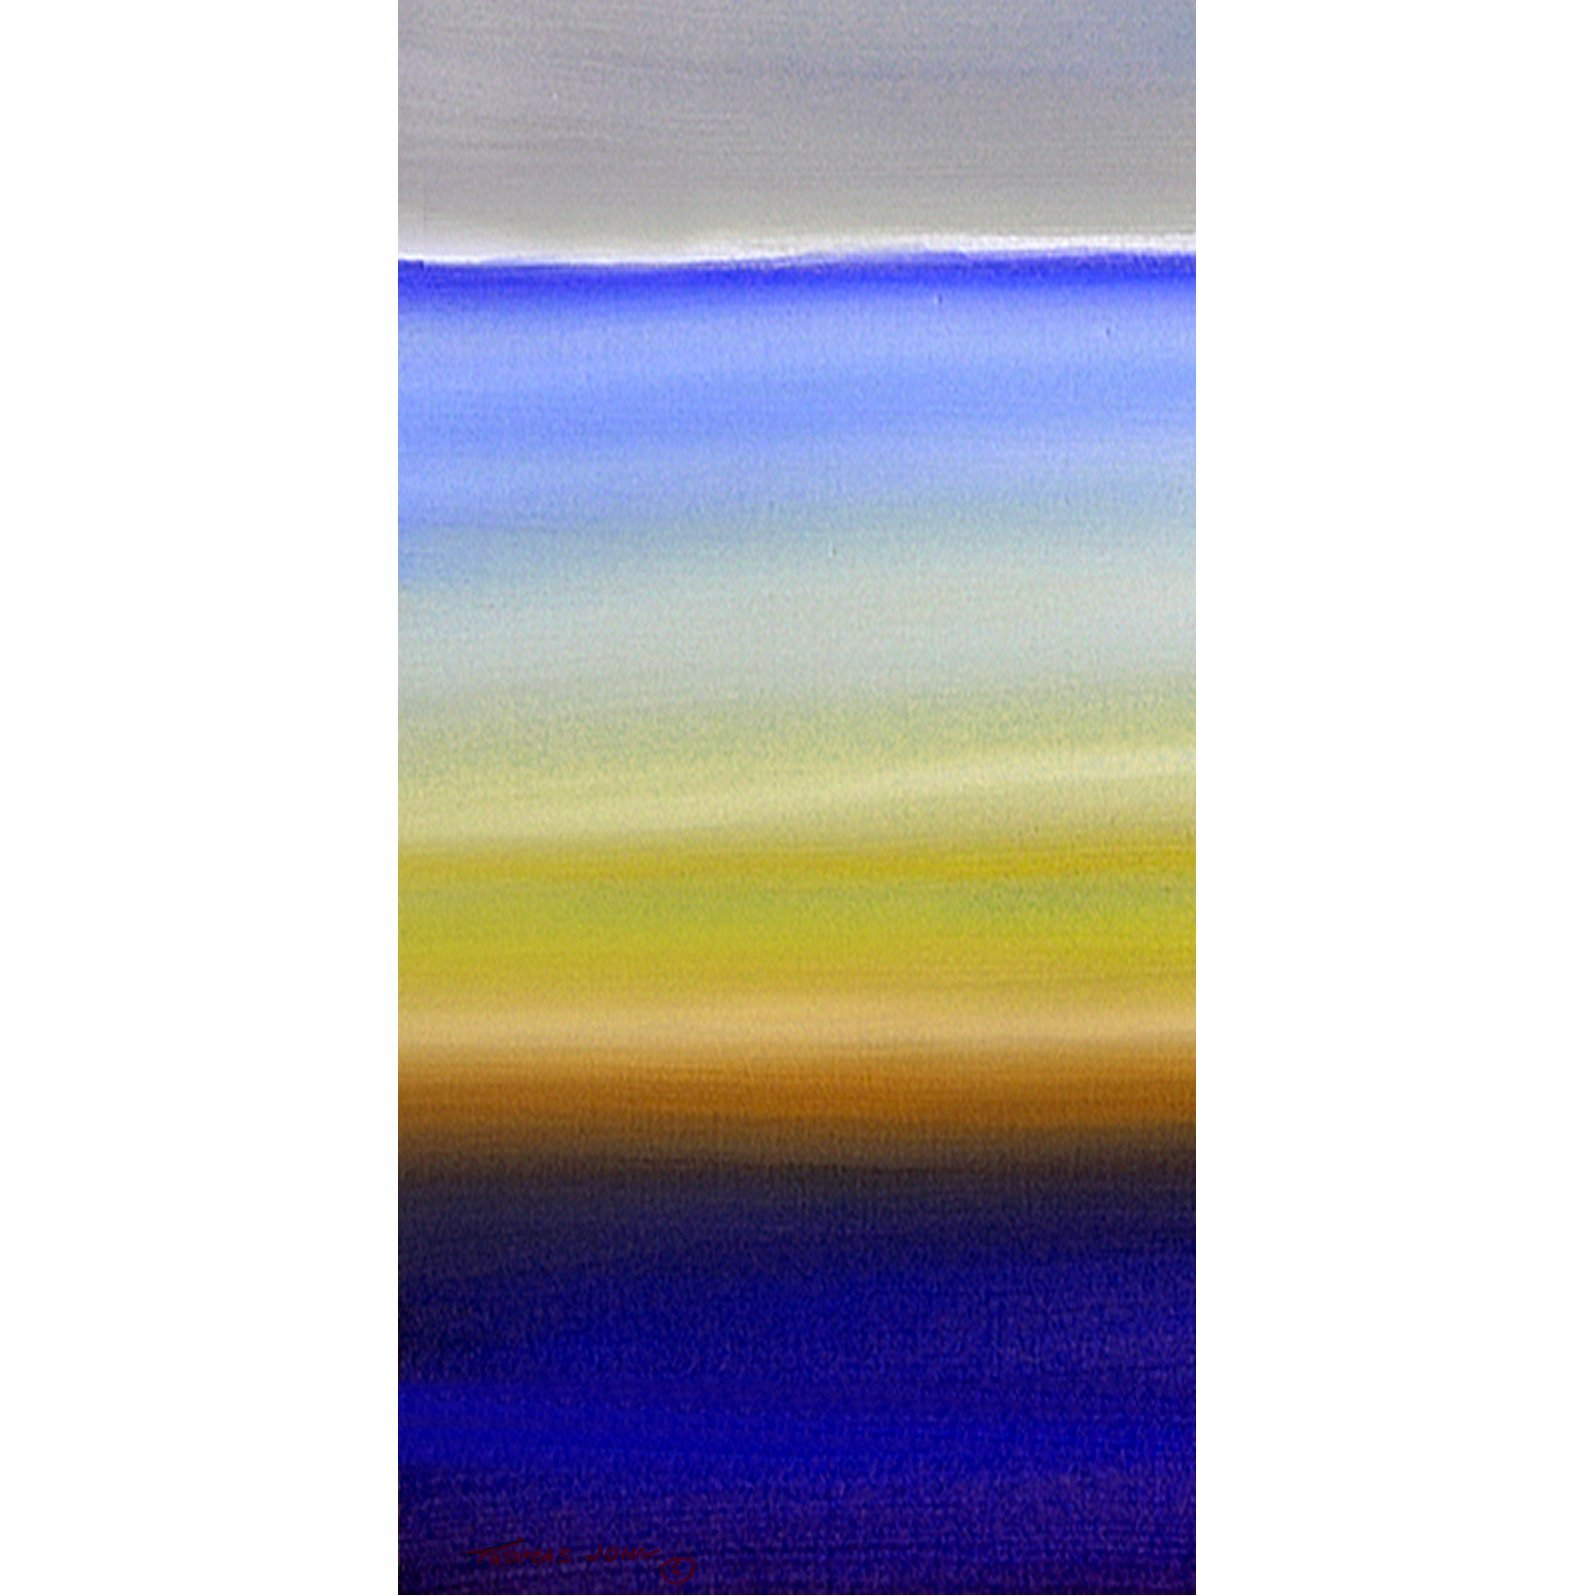 Thomas Gress; Blue Sea Sunset, 2019, Original Painting Acrylic, 24 x 48 inches. Artwork description: 241 OCEAN, BLUE PAINTINGS, WATER SCENES, SKY, SUNSETS, SEA ART, BOATS, BIRDS, LARGE ART, BIG PAINTINGS, CANVAS ART, WIRE, WOOD, SUN, BEACH ART, ...